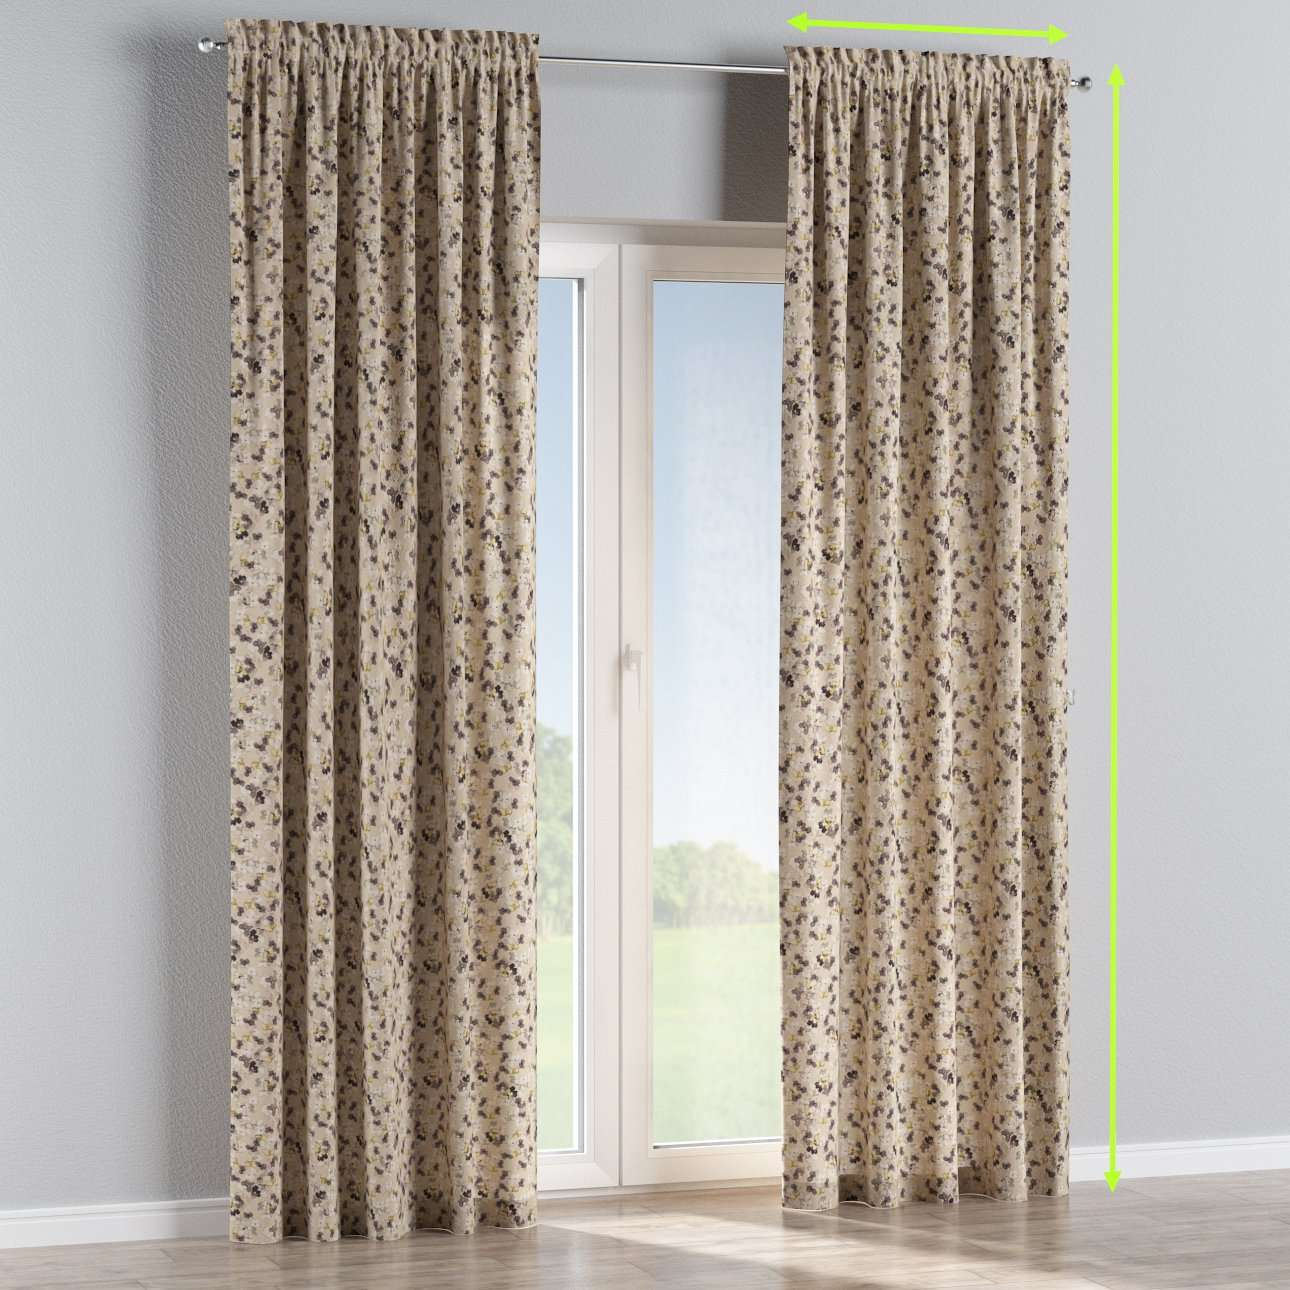 Slot and frill lined curtains in collection Londres, fabric: 140-48